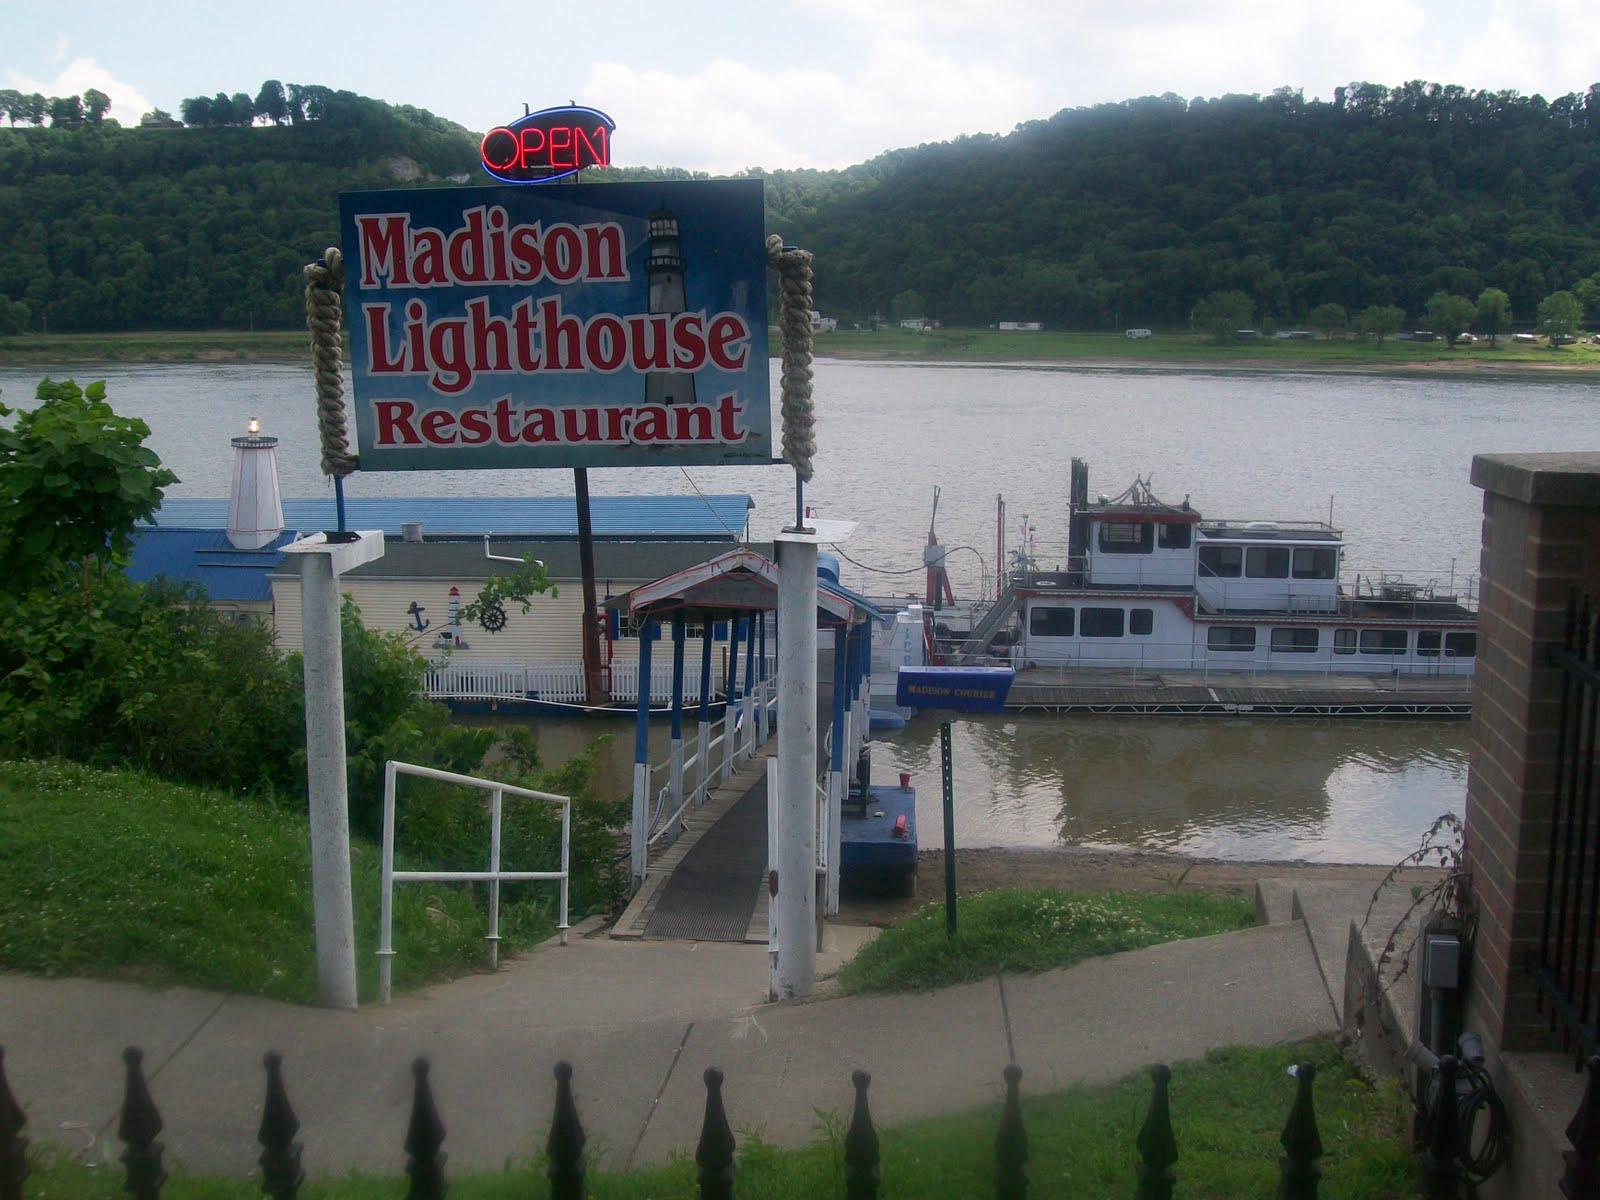 While Exploring We Found The Madison Lighthouse On River I Love Side Restaurants So Had To Stop In